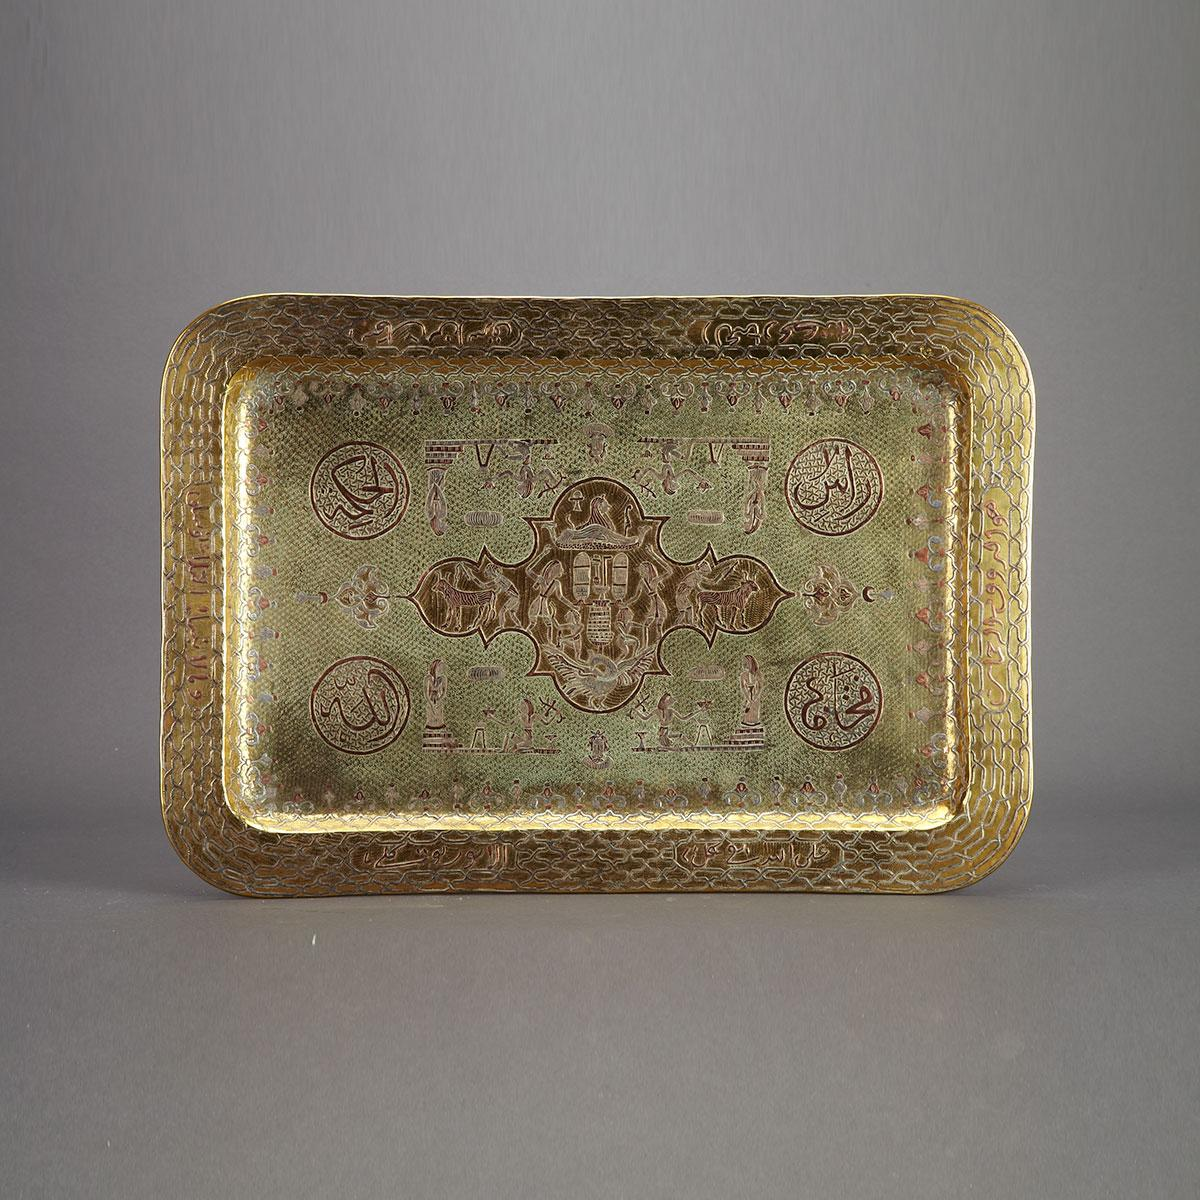 Cairoware Silver and Copper Inlaid Brass Tray, circa 1920